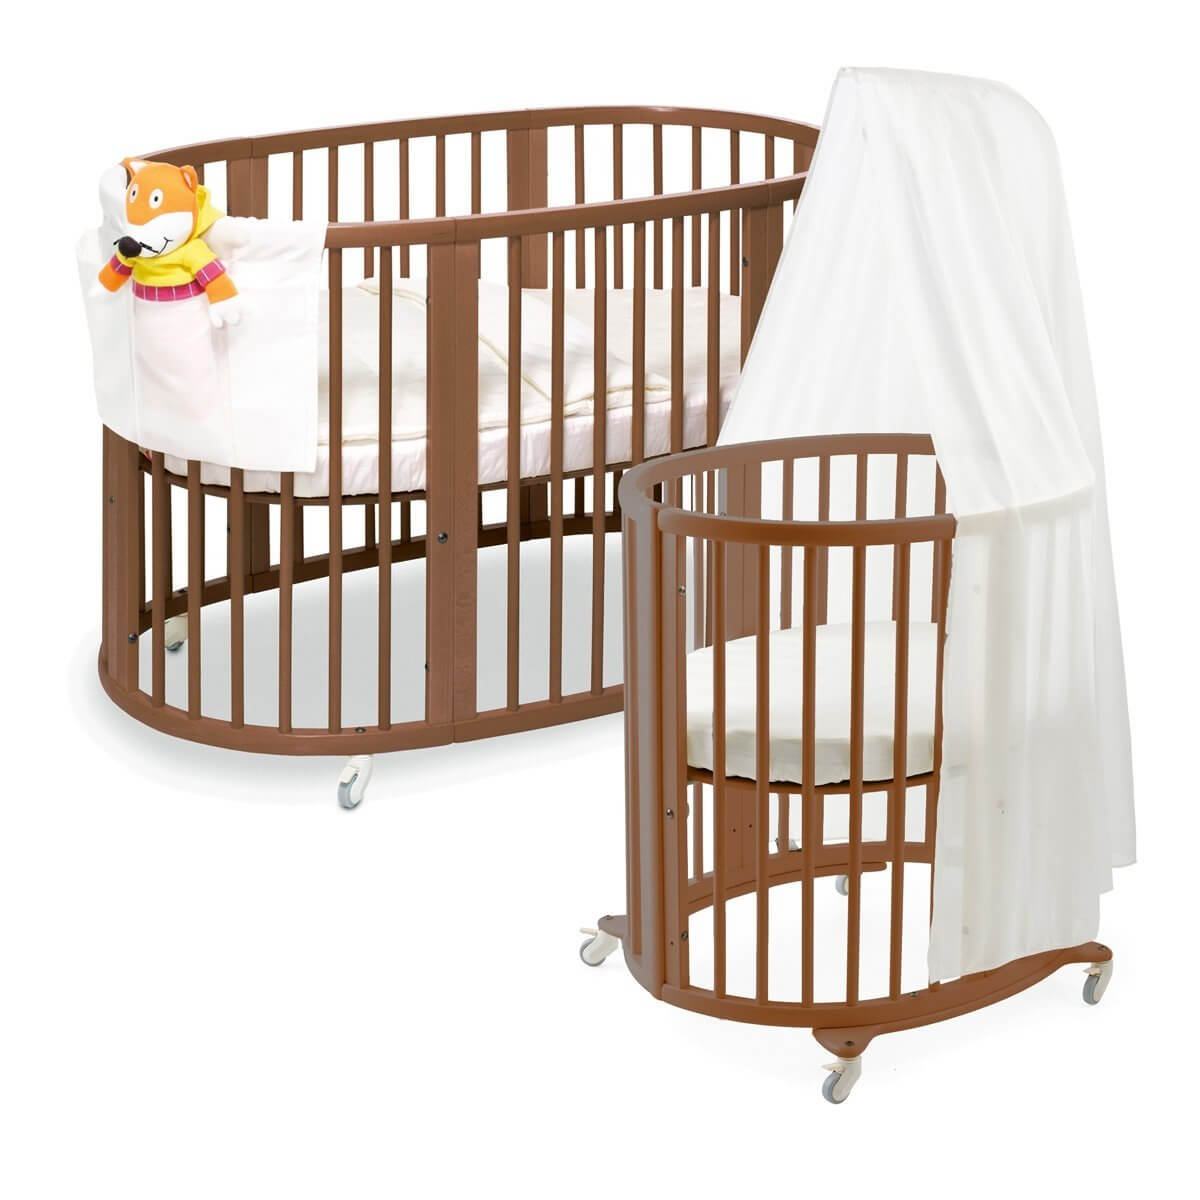 Unfinished crib for sale - Wooden Crib For Sale In Cavite This Lengthy Oval Crib From Stokke Is Designed To